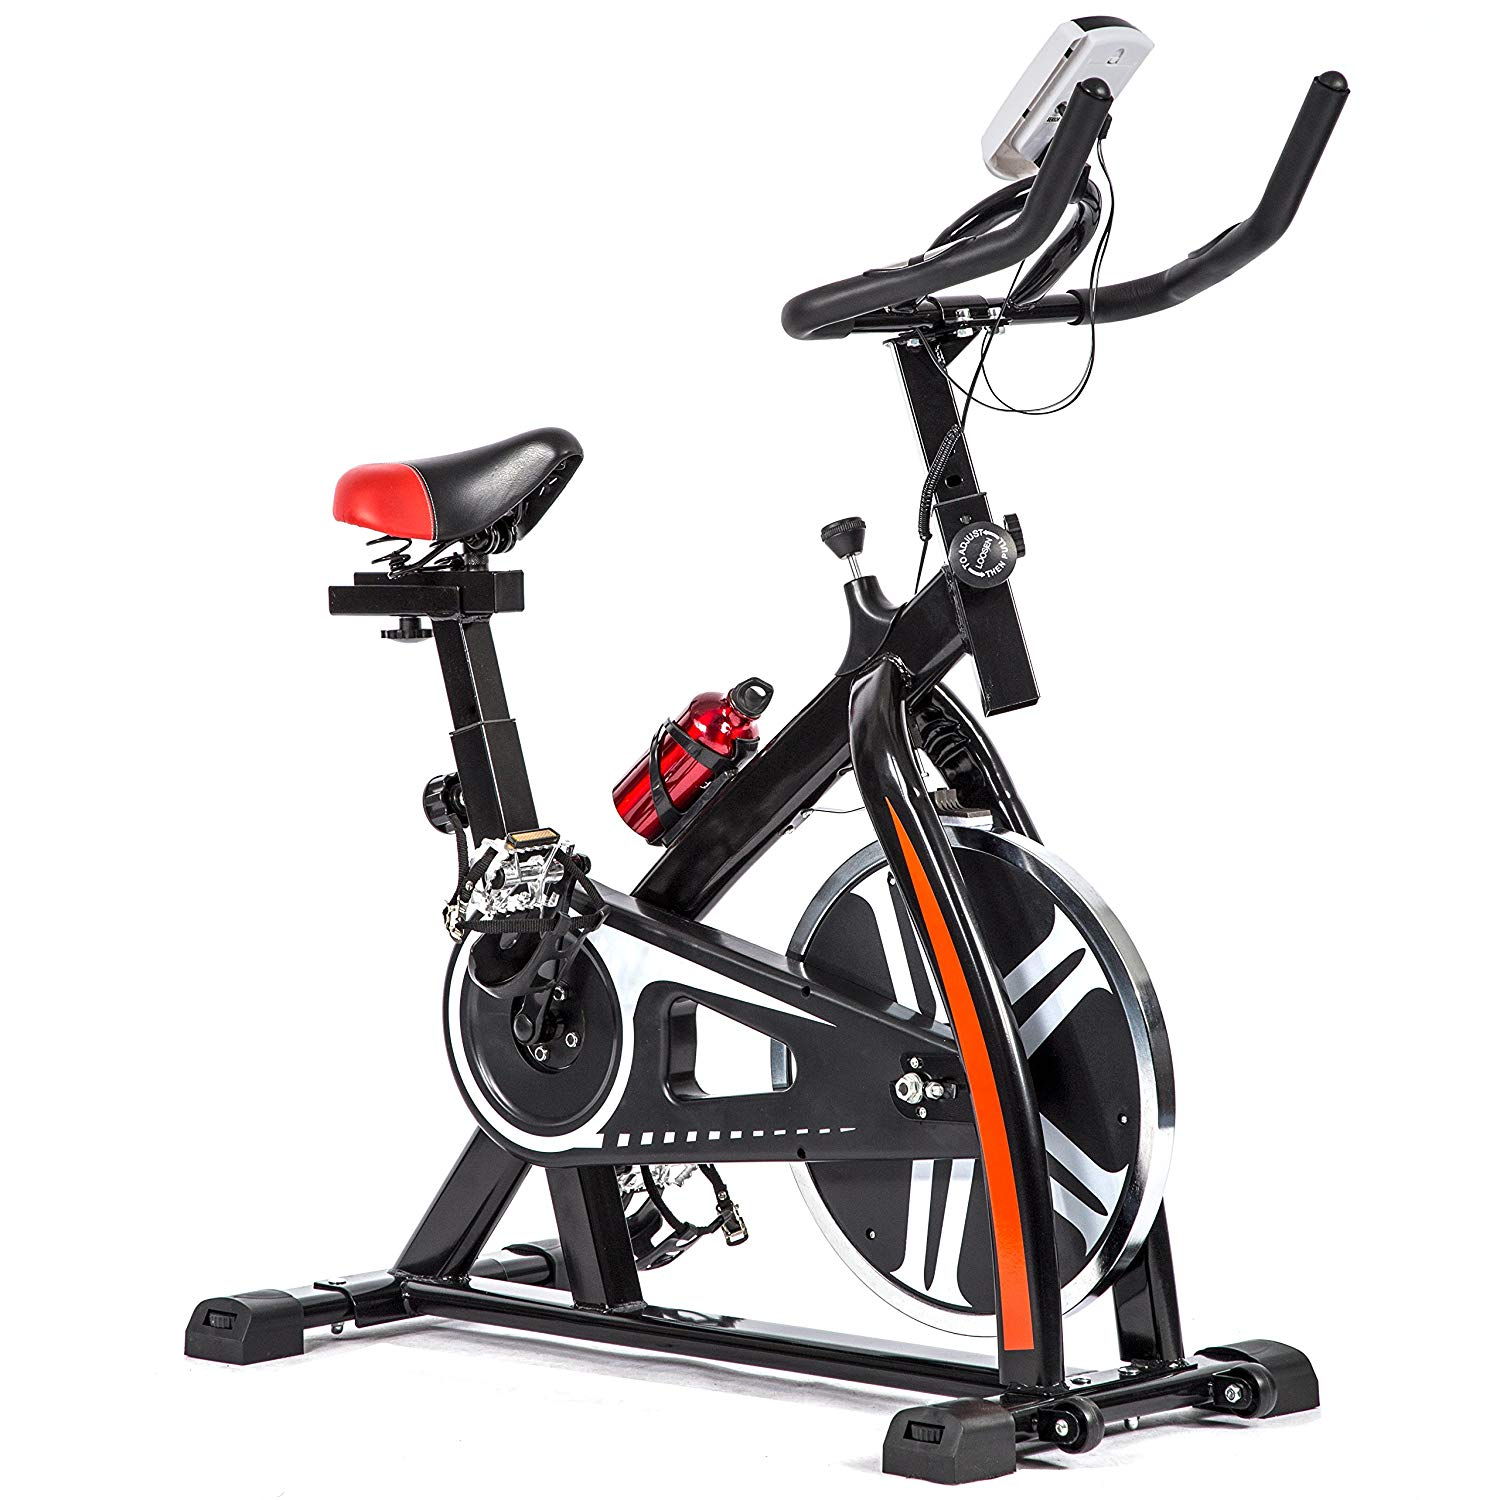 a2378784fdd Get Quotations · BestMassage Cycling Bike Exercise Bike Pro Indoor Cycling Spin  Bike Trainer Bicycle Cardio Fitness Heart Pulse